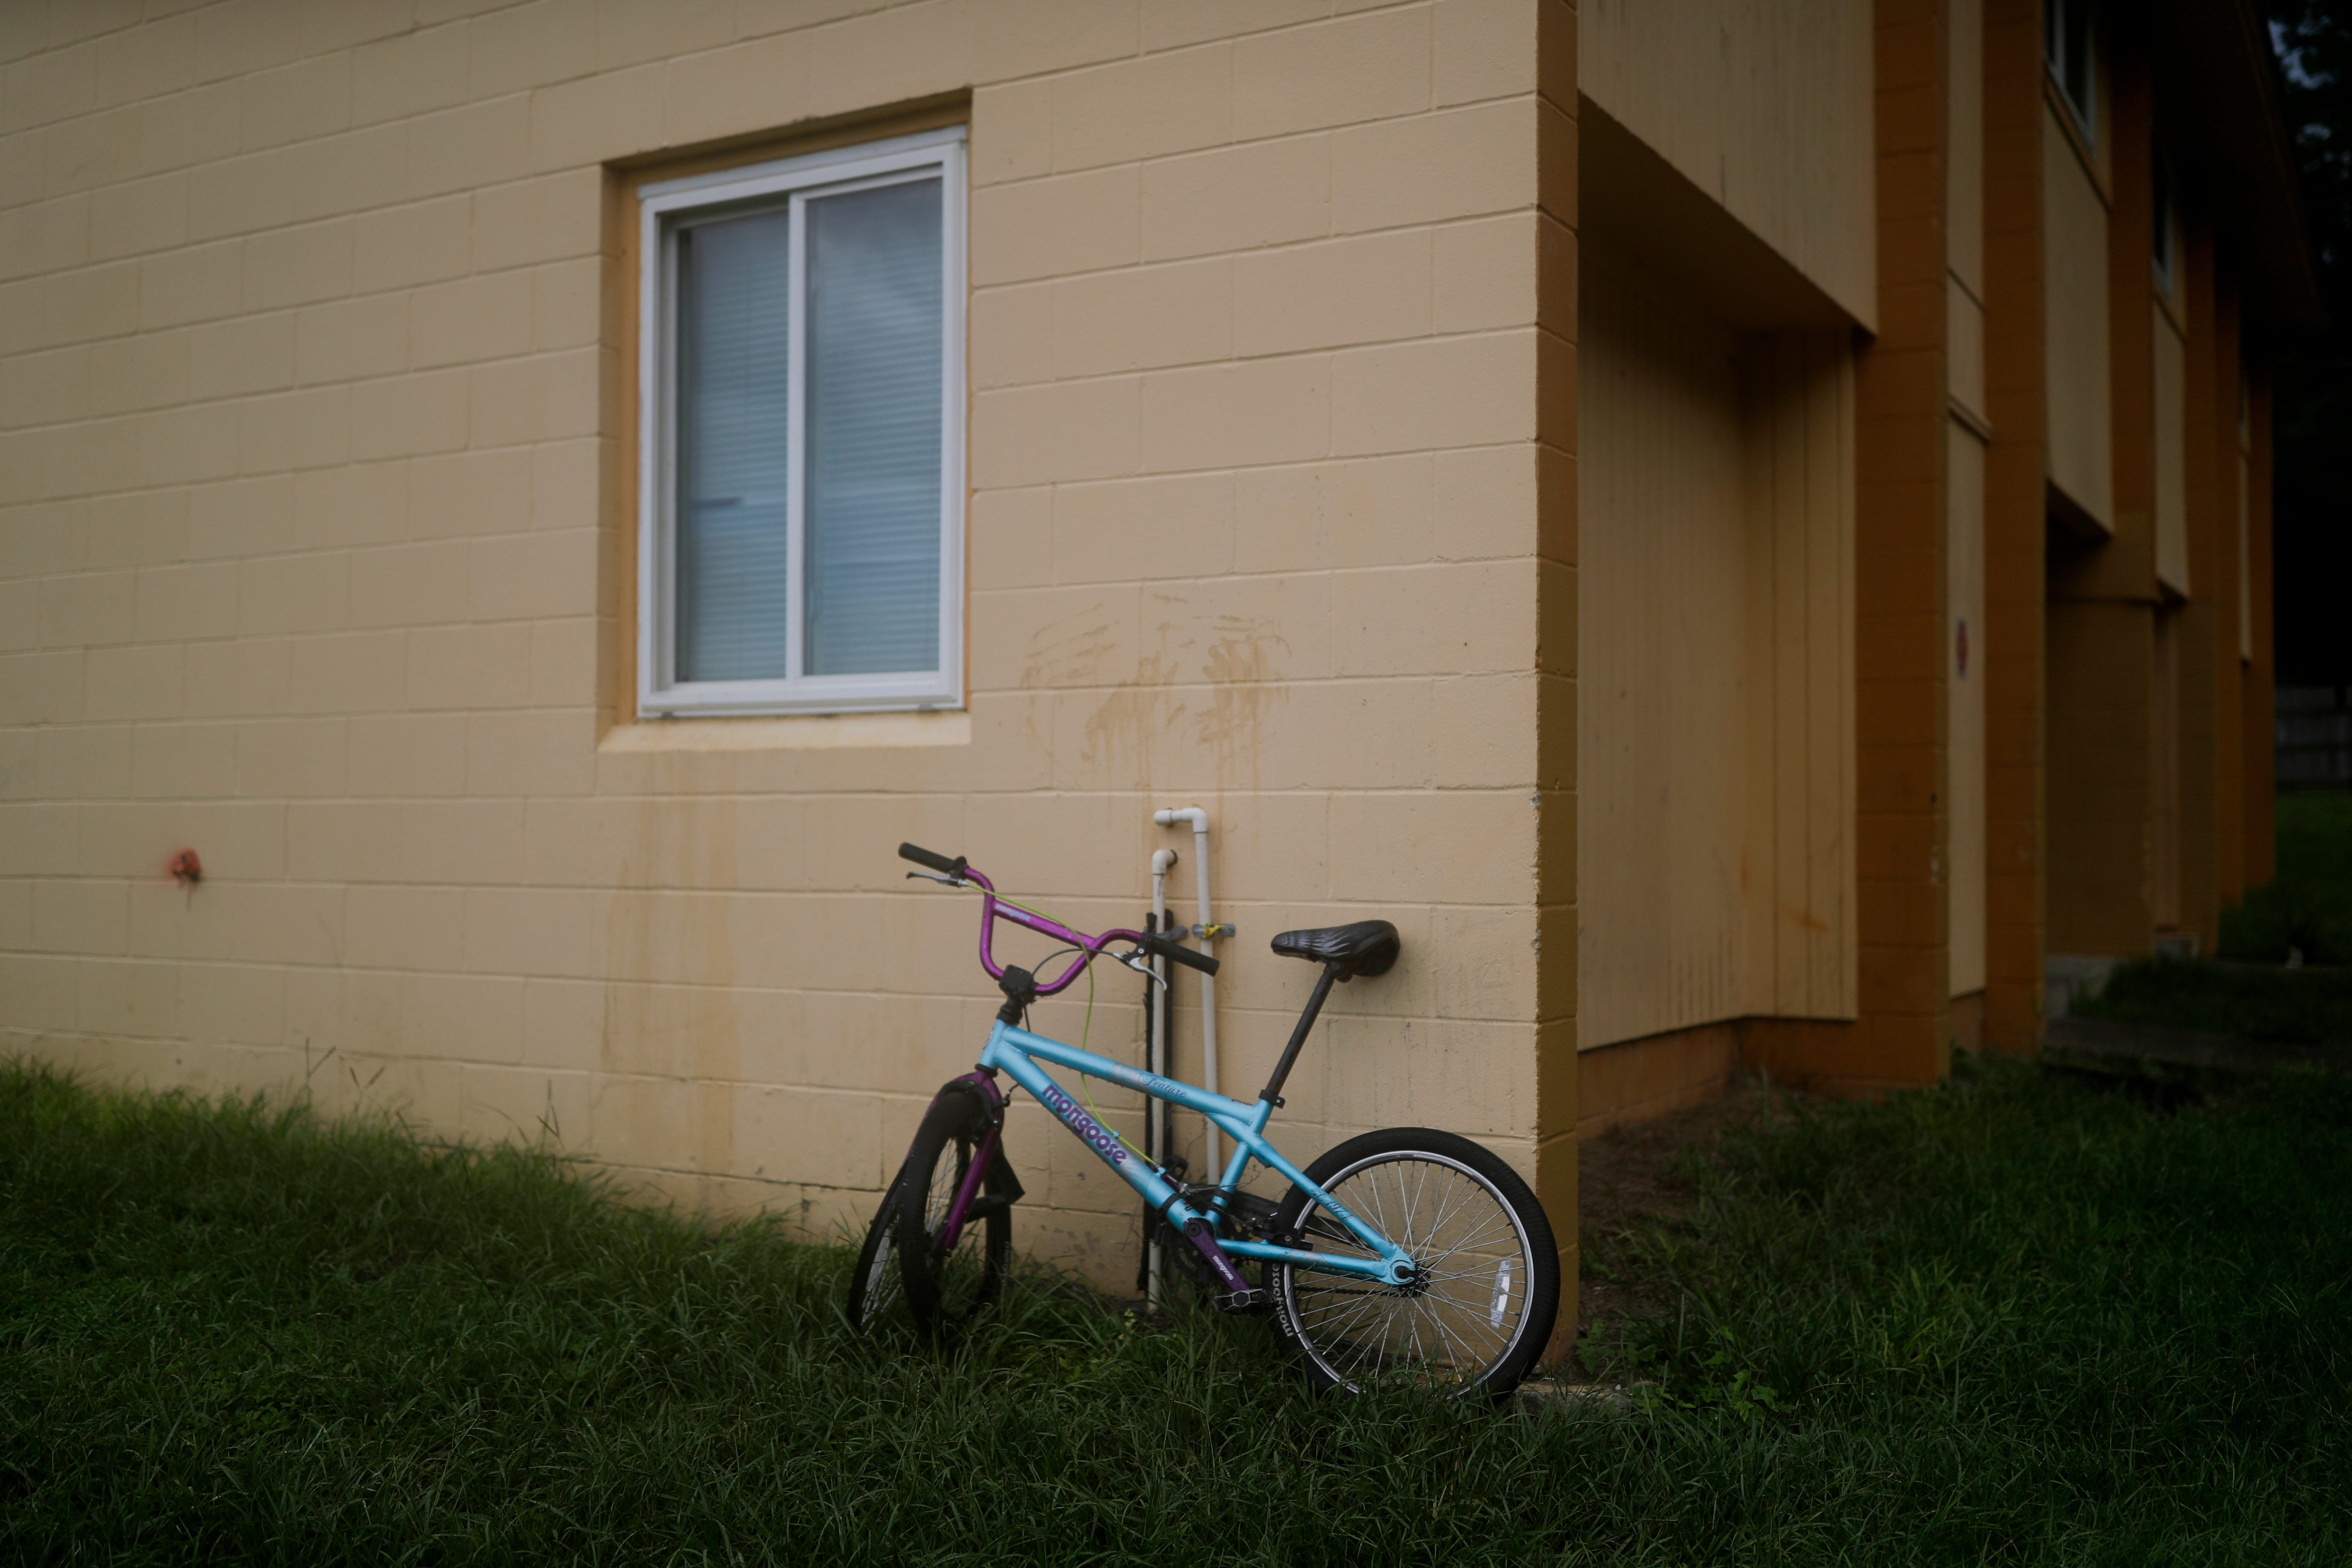 A children's bicycle leans against an apartment building where the victim of a Friday night shooting lived at the Springfield Apartments on Joe Louis Street.